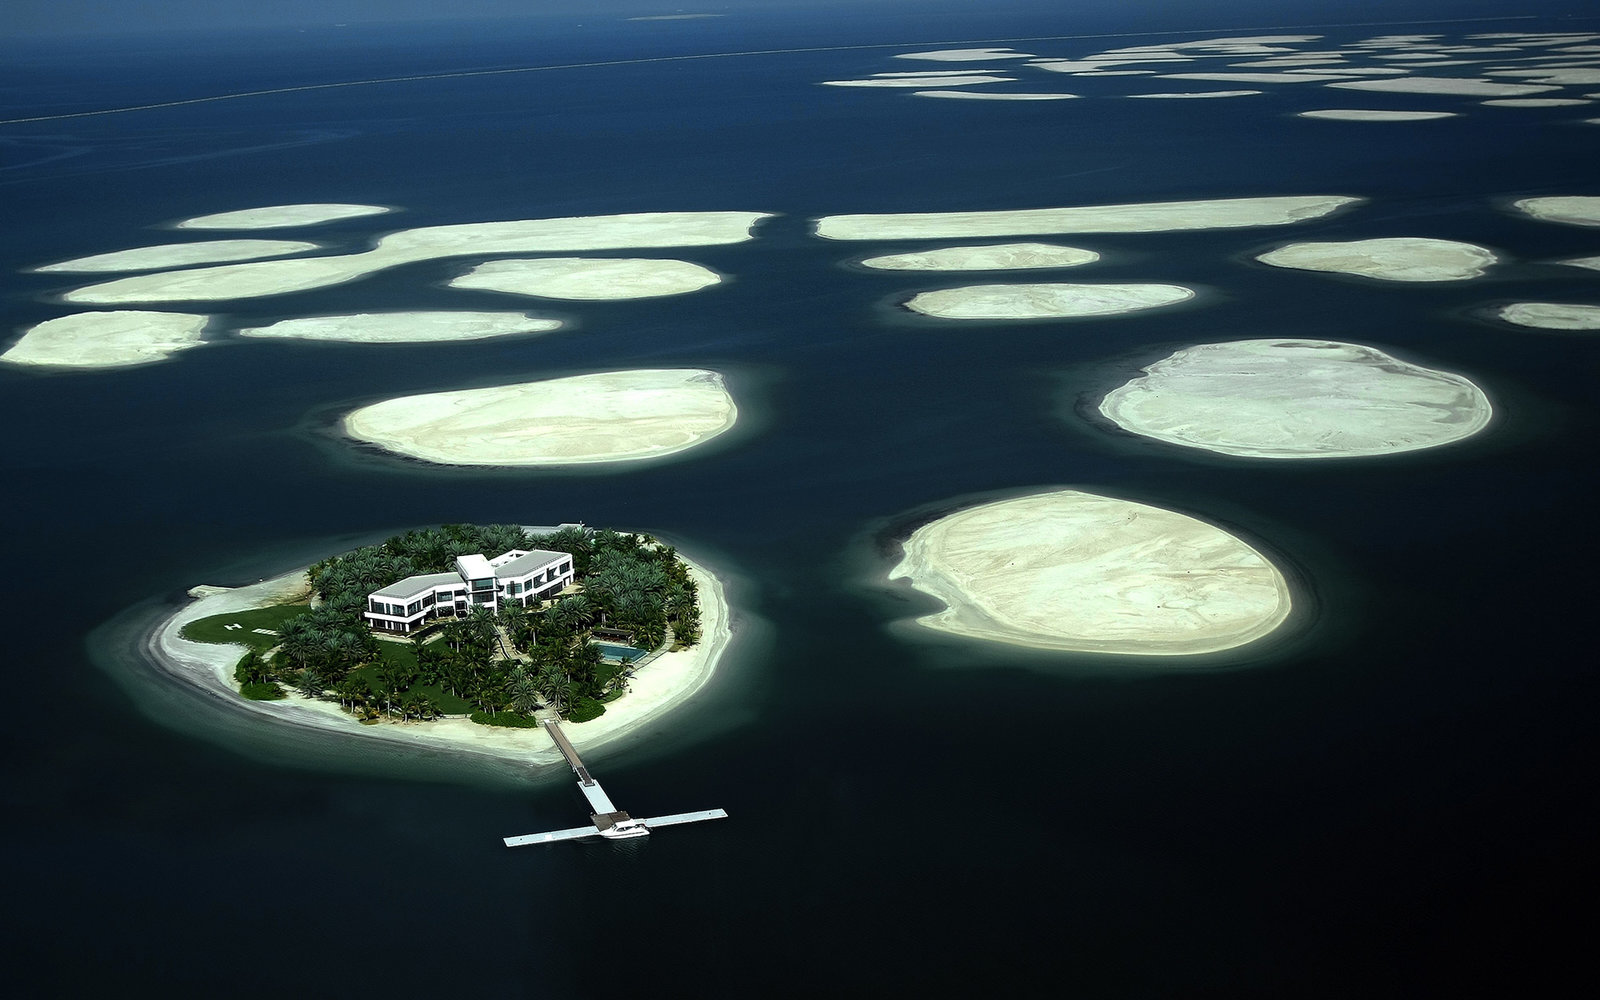 """(FILES) A picture taken on December 21, 2009 shows an aerial view of a cluster of man-made islands known as """"The World"""" by Emirati property developers Nakheel off the coast of Dubai. The real state project is stable, its developer Nakheel insists, despite"""